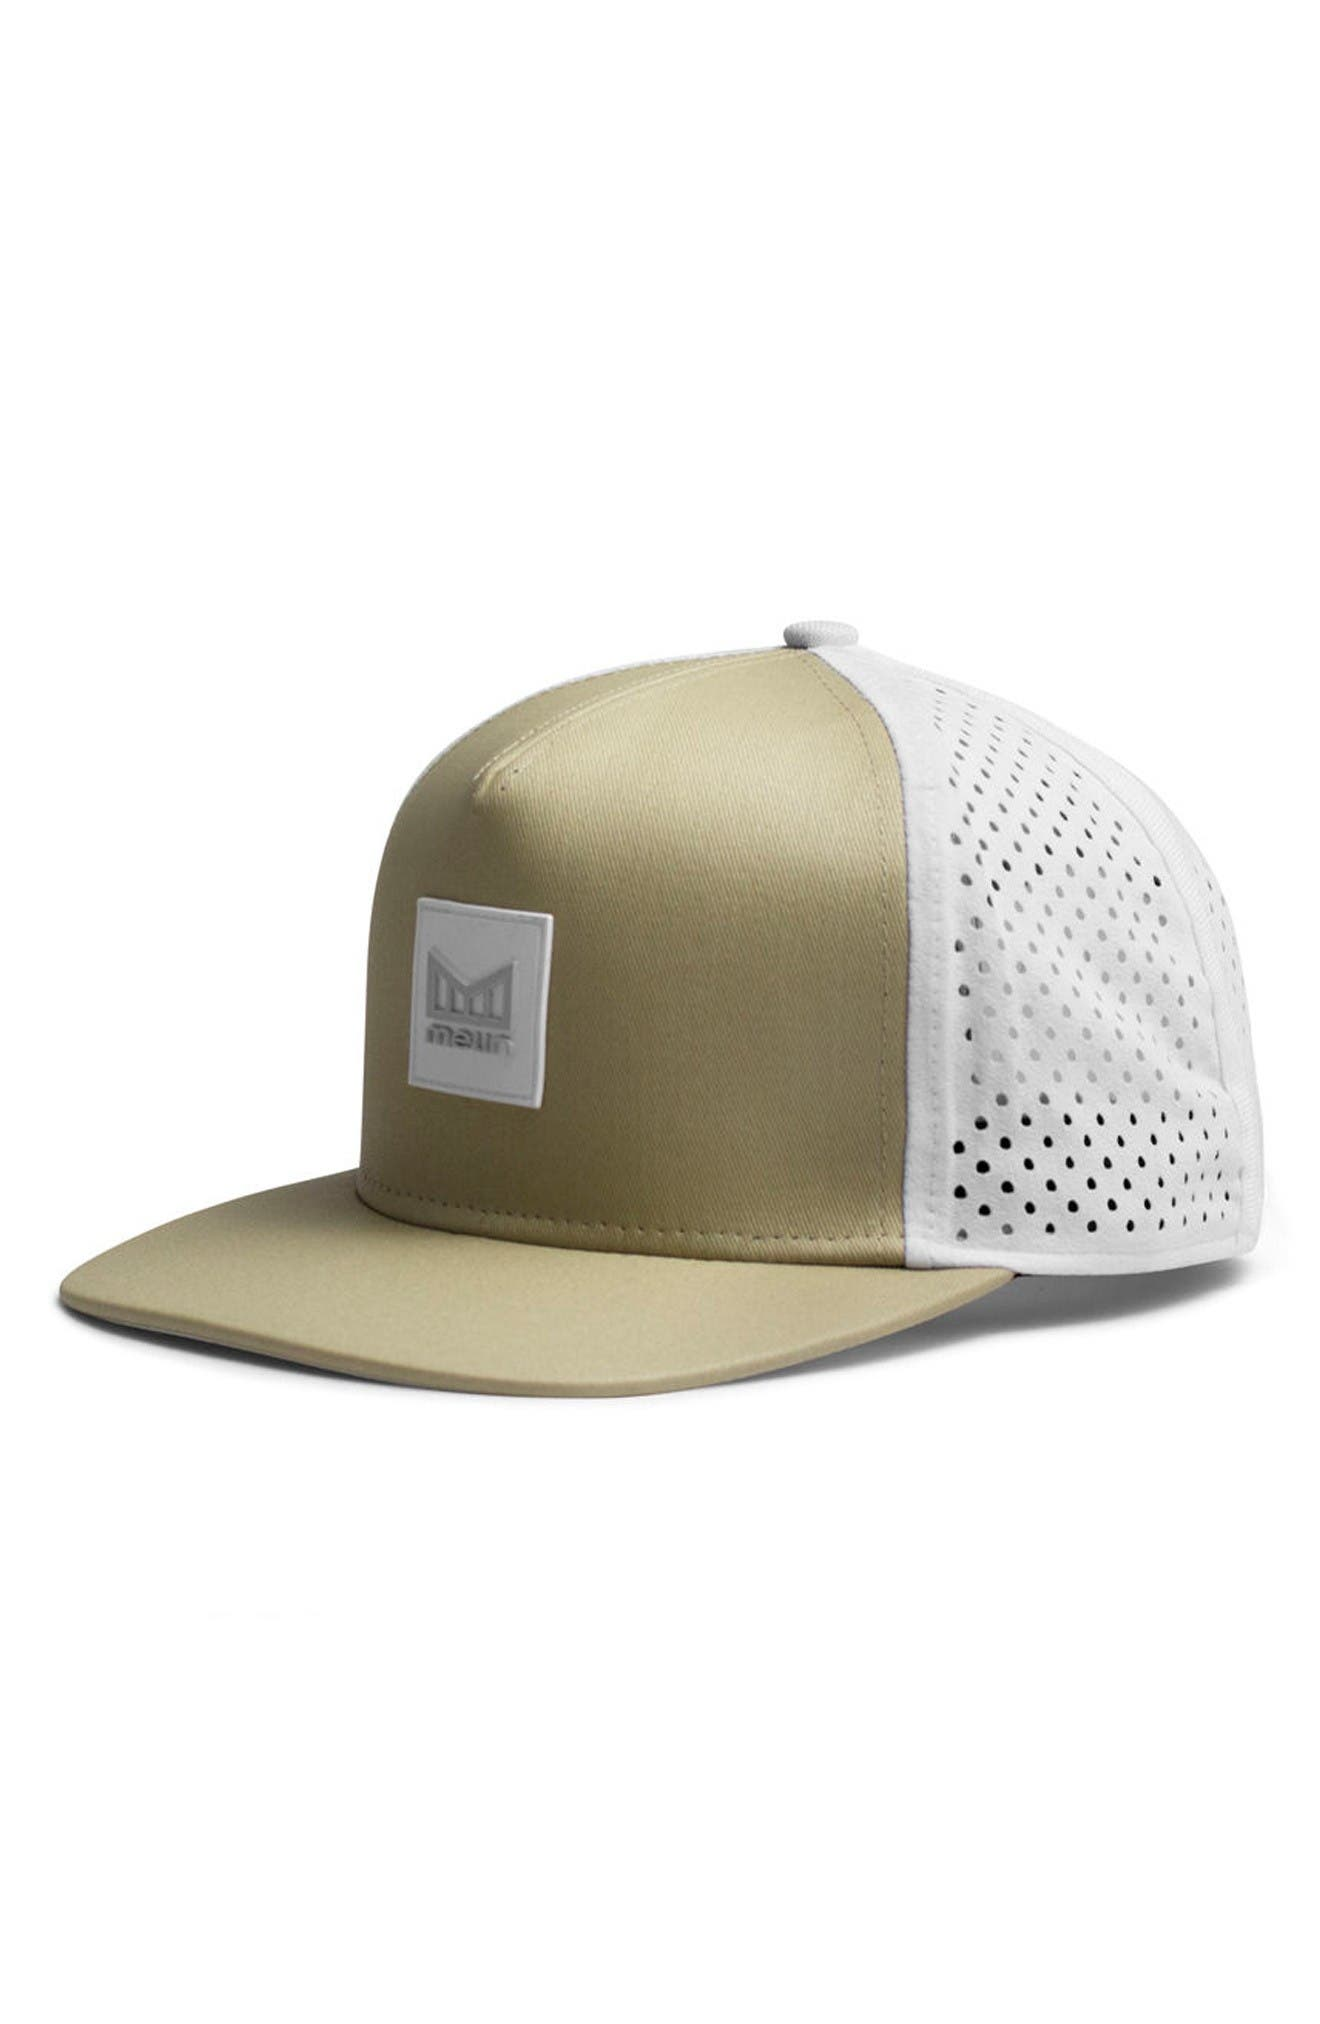 'The Nomad' Split Fit Snapback Baseball Cap,                             Main thumbnail 1, color,                             Sand